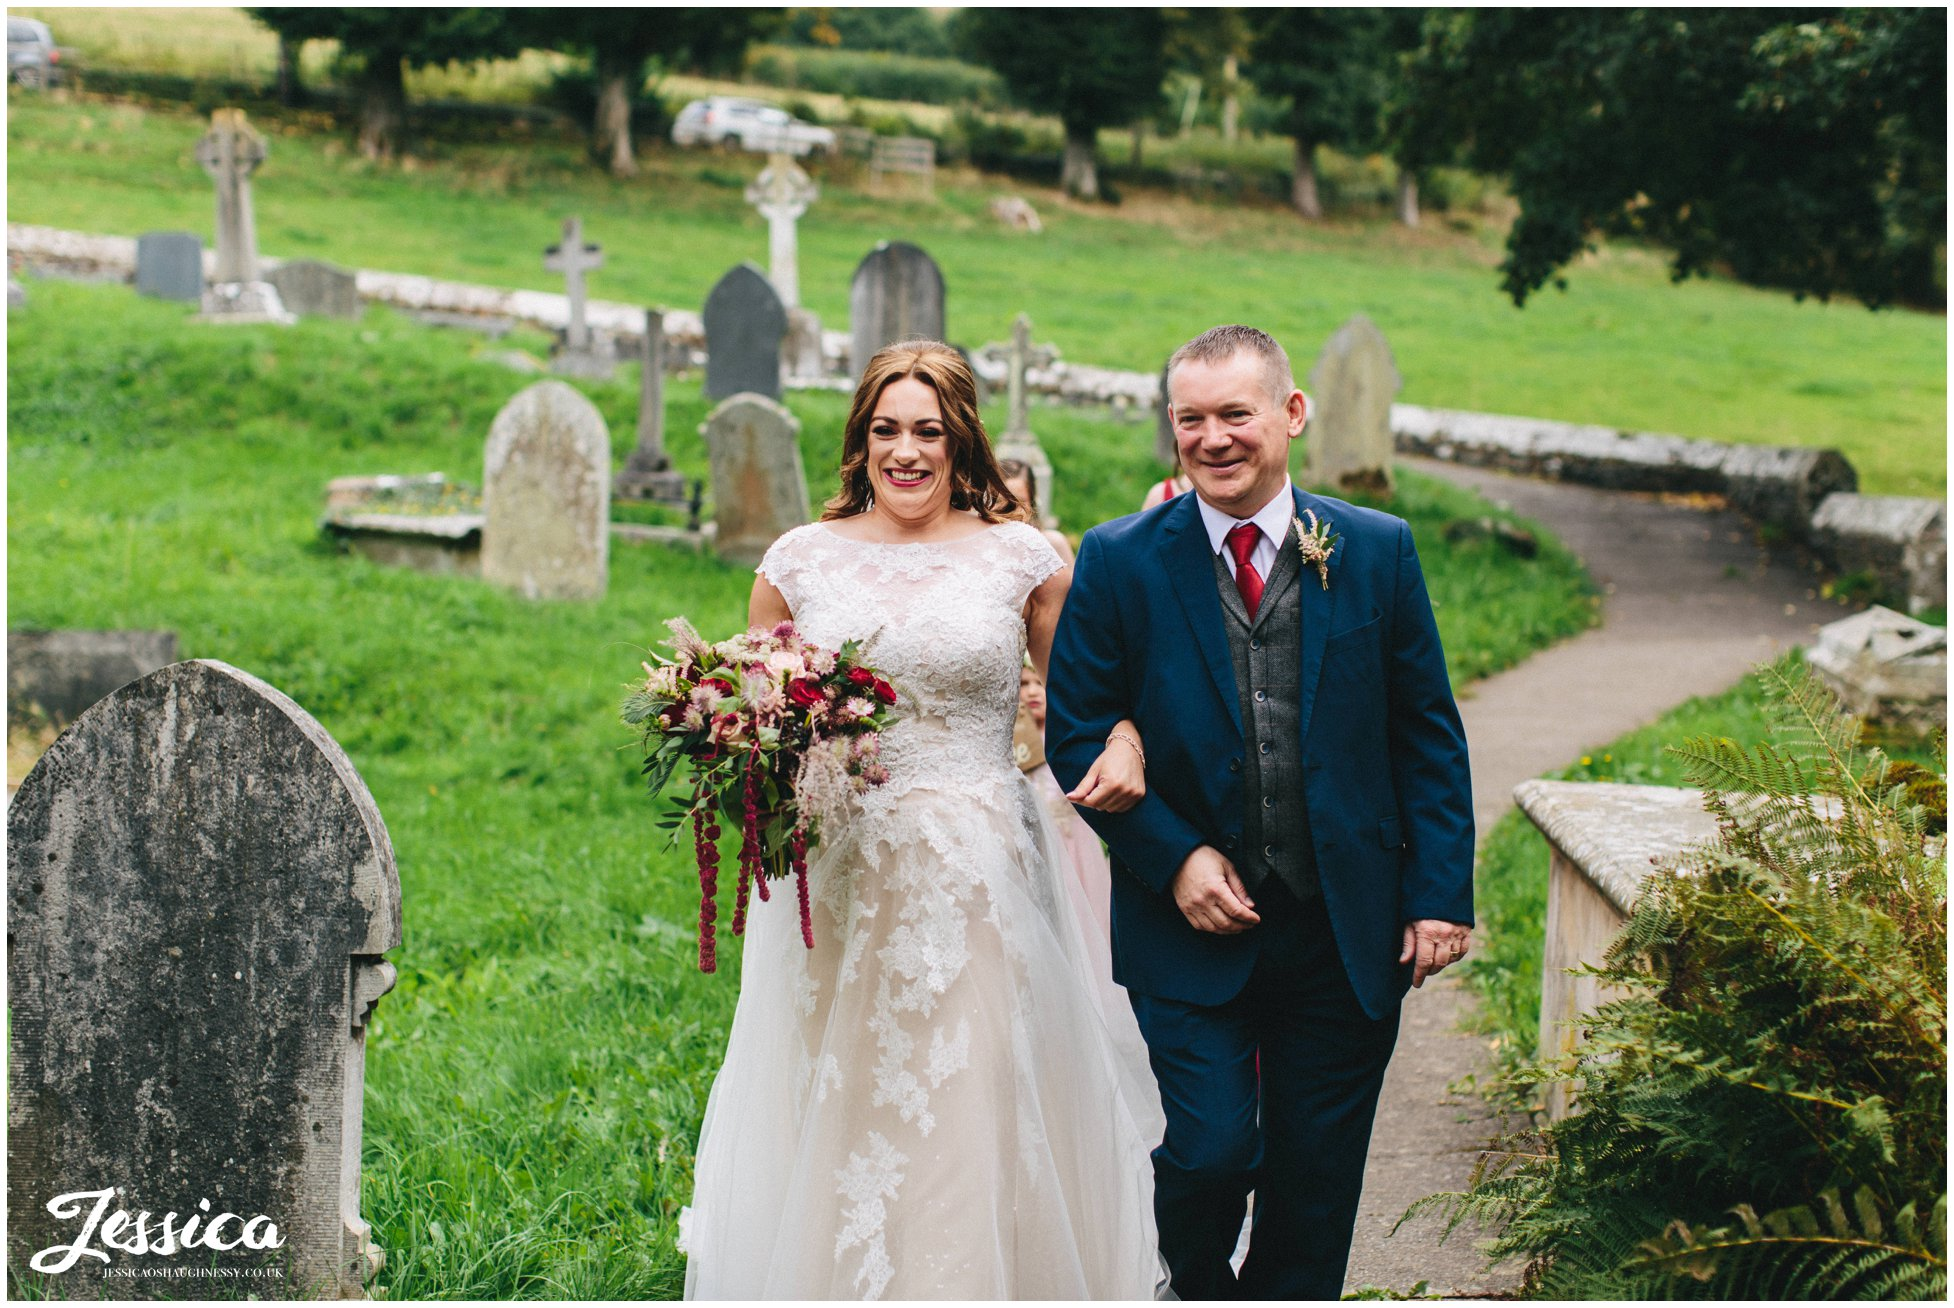 the bride and her father walk to the church entrance